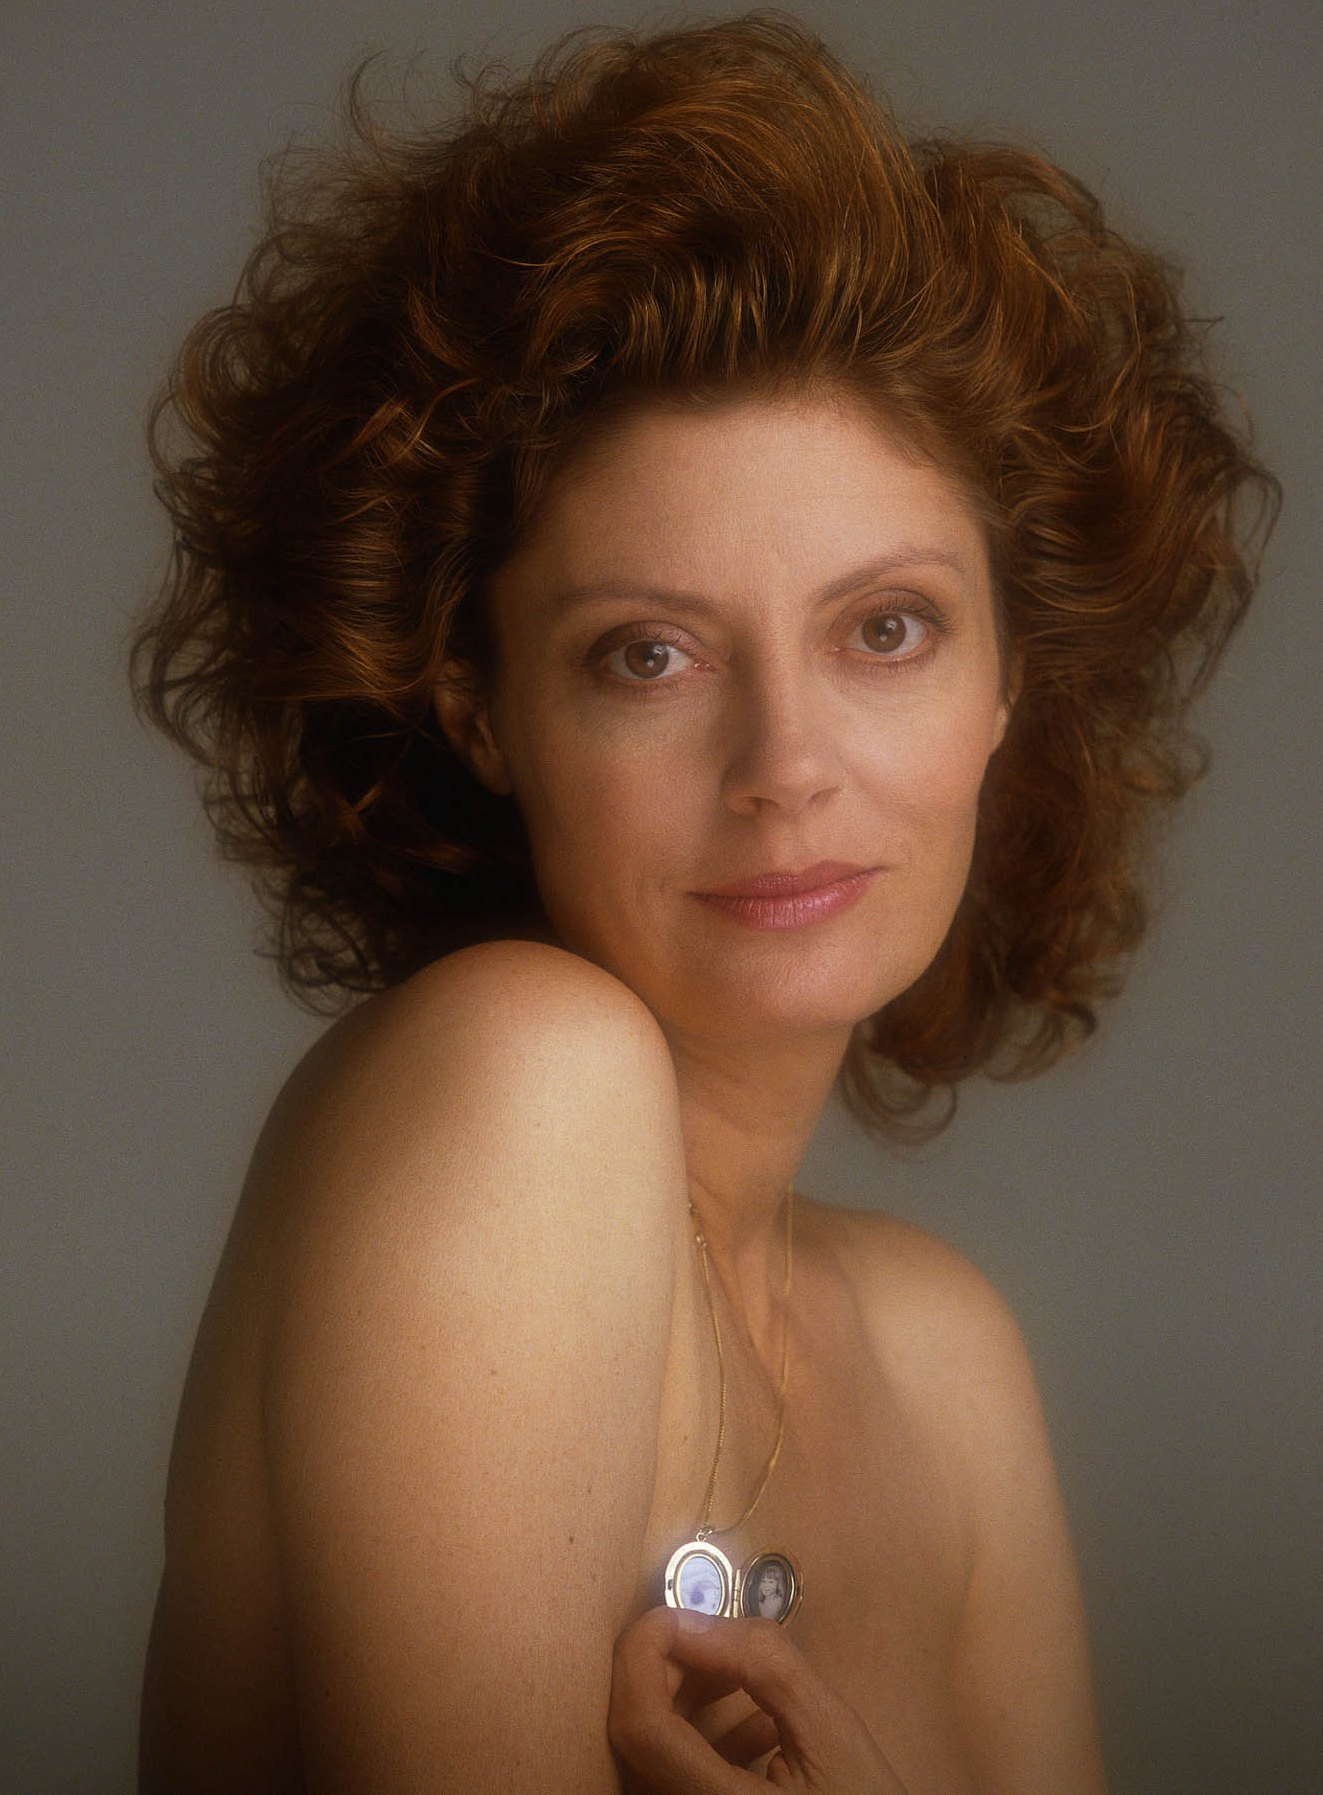 Susan sarandon nude think